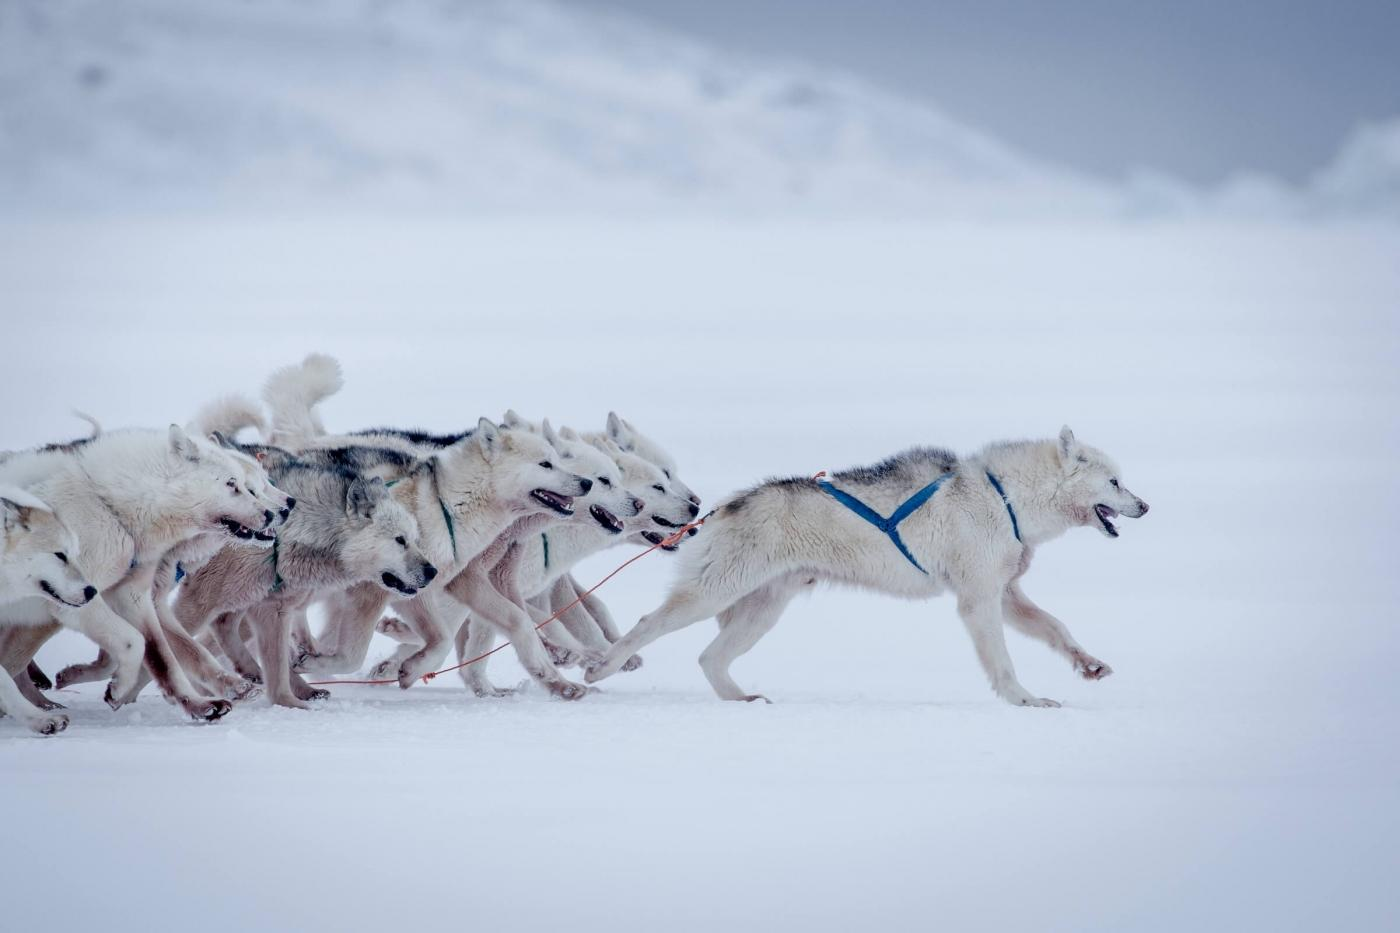 Sled dogs at full speed outside Oqaatsut in Greenland. Photo by Mads Pihl